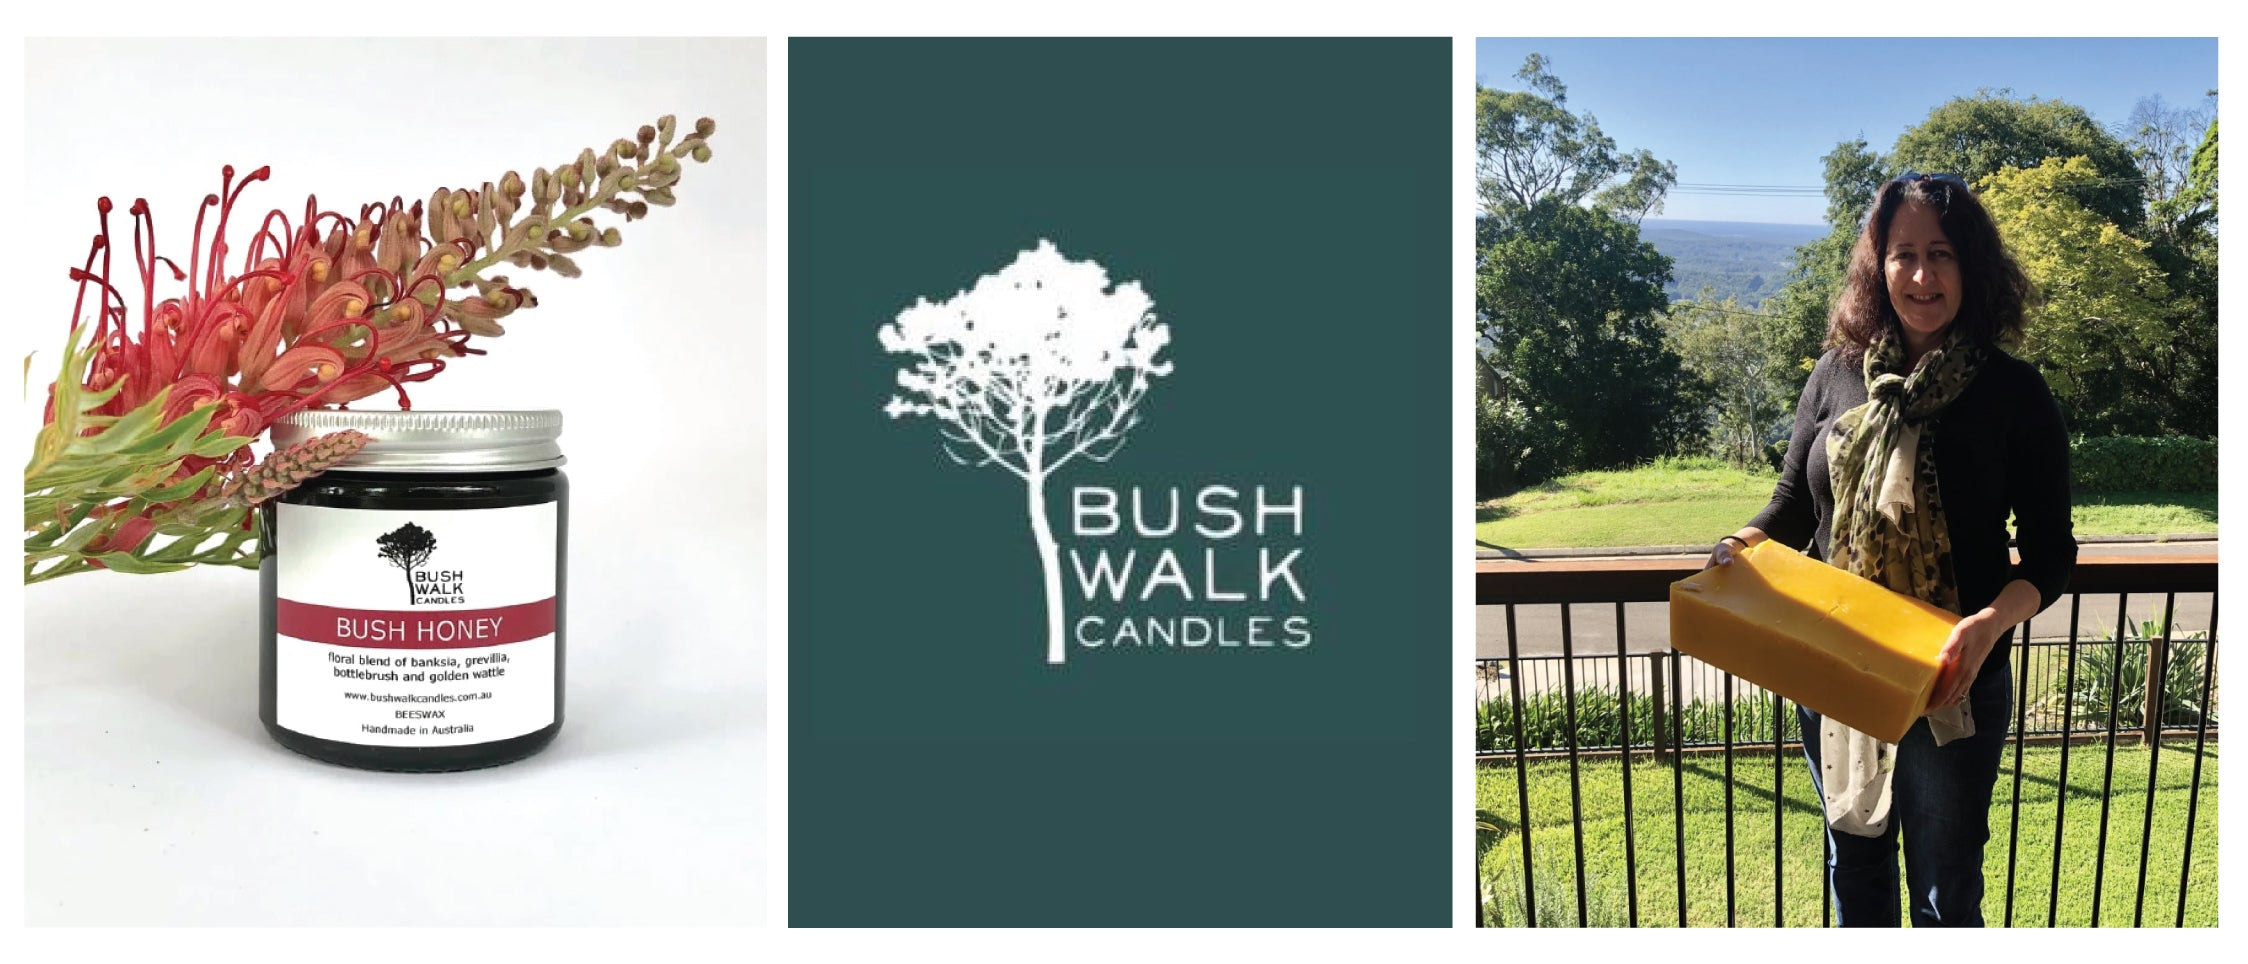 podcast bushwalk candles beeswax arabella lubbers